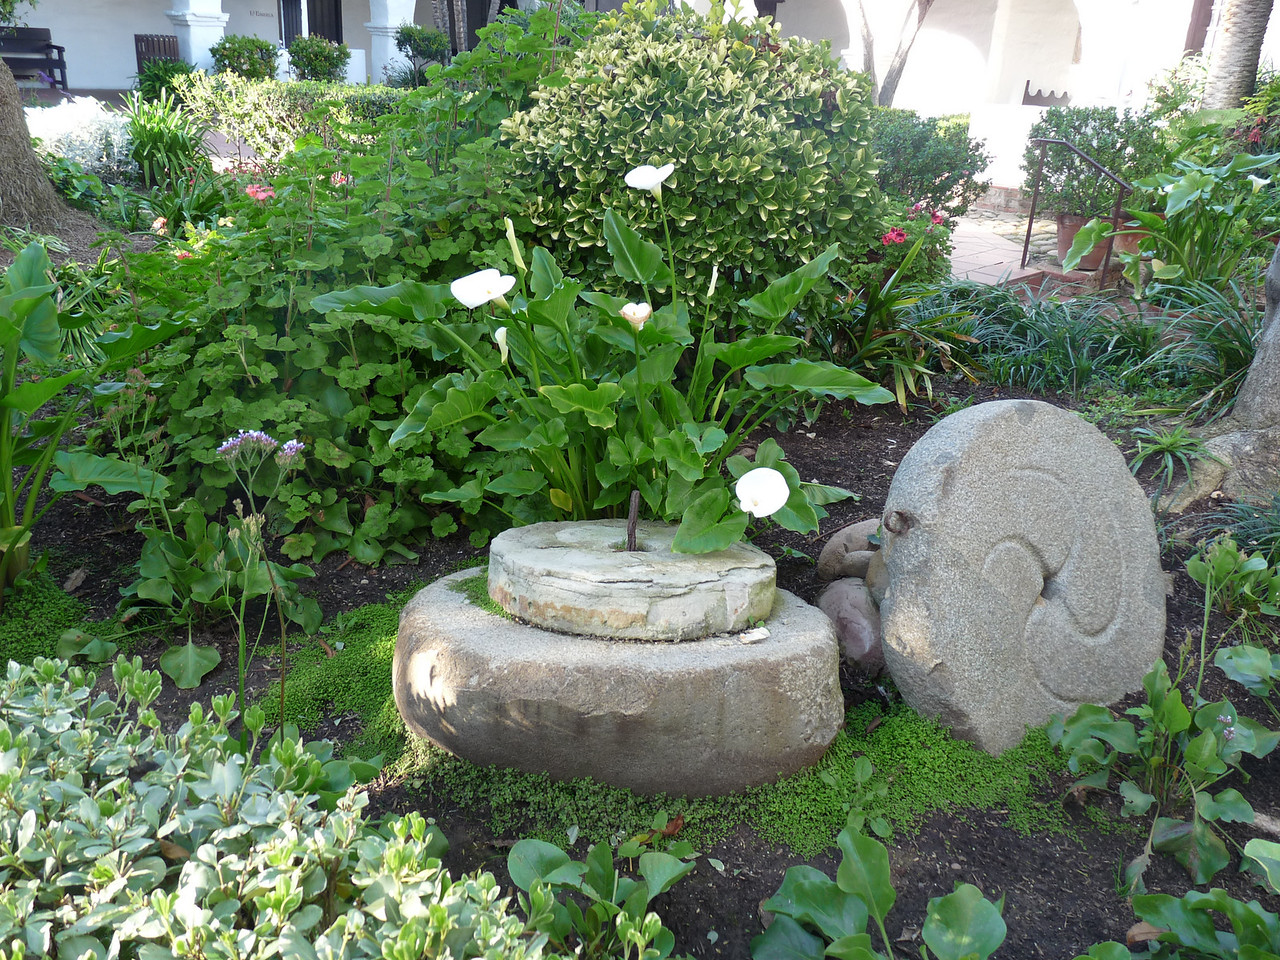 I like this little tableau -- a couple of grindstones in the garden